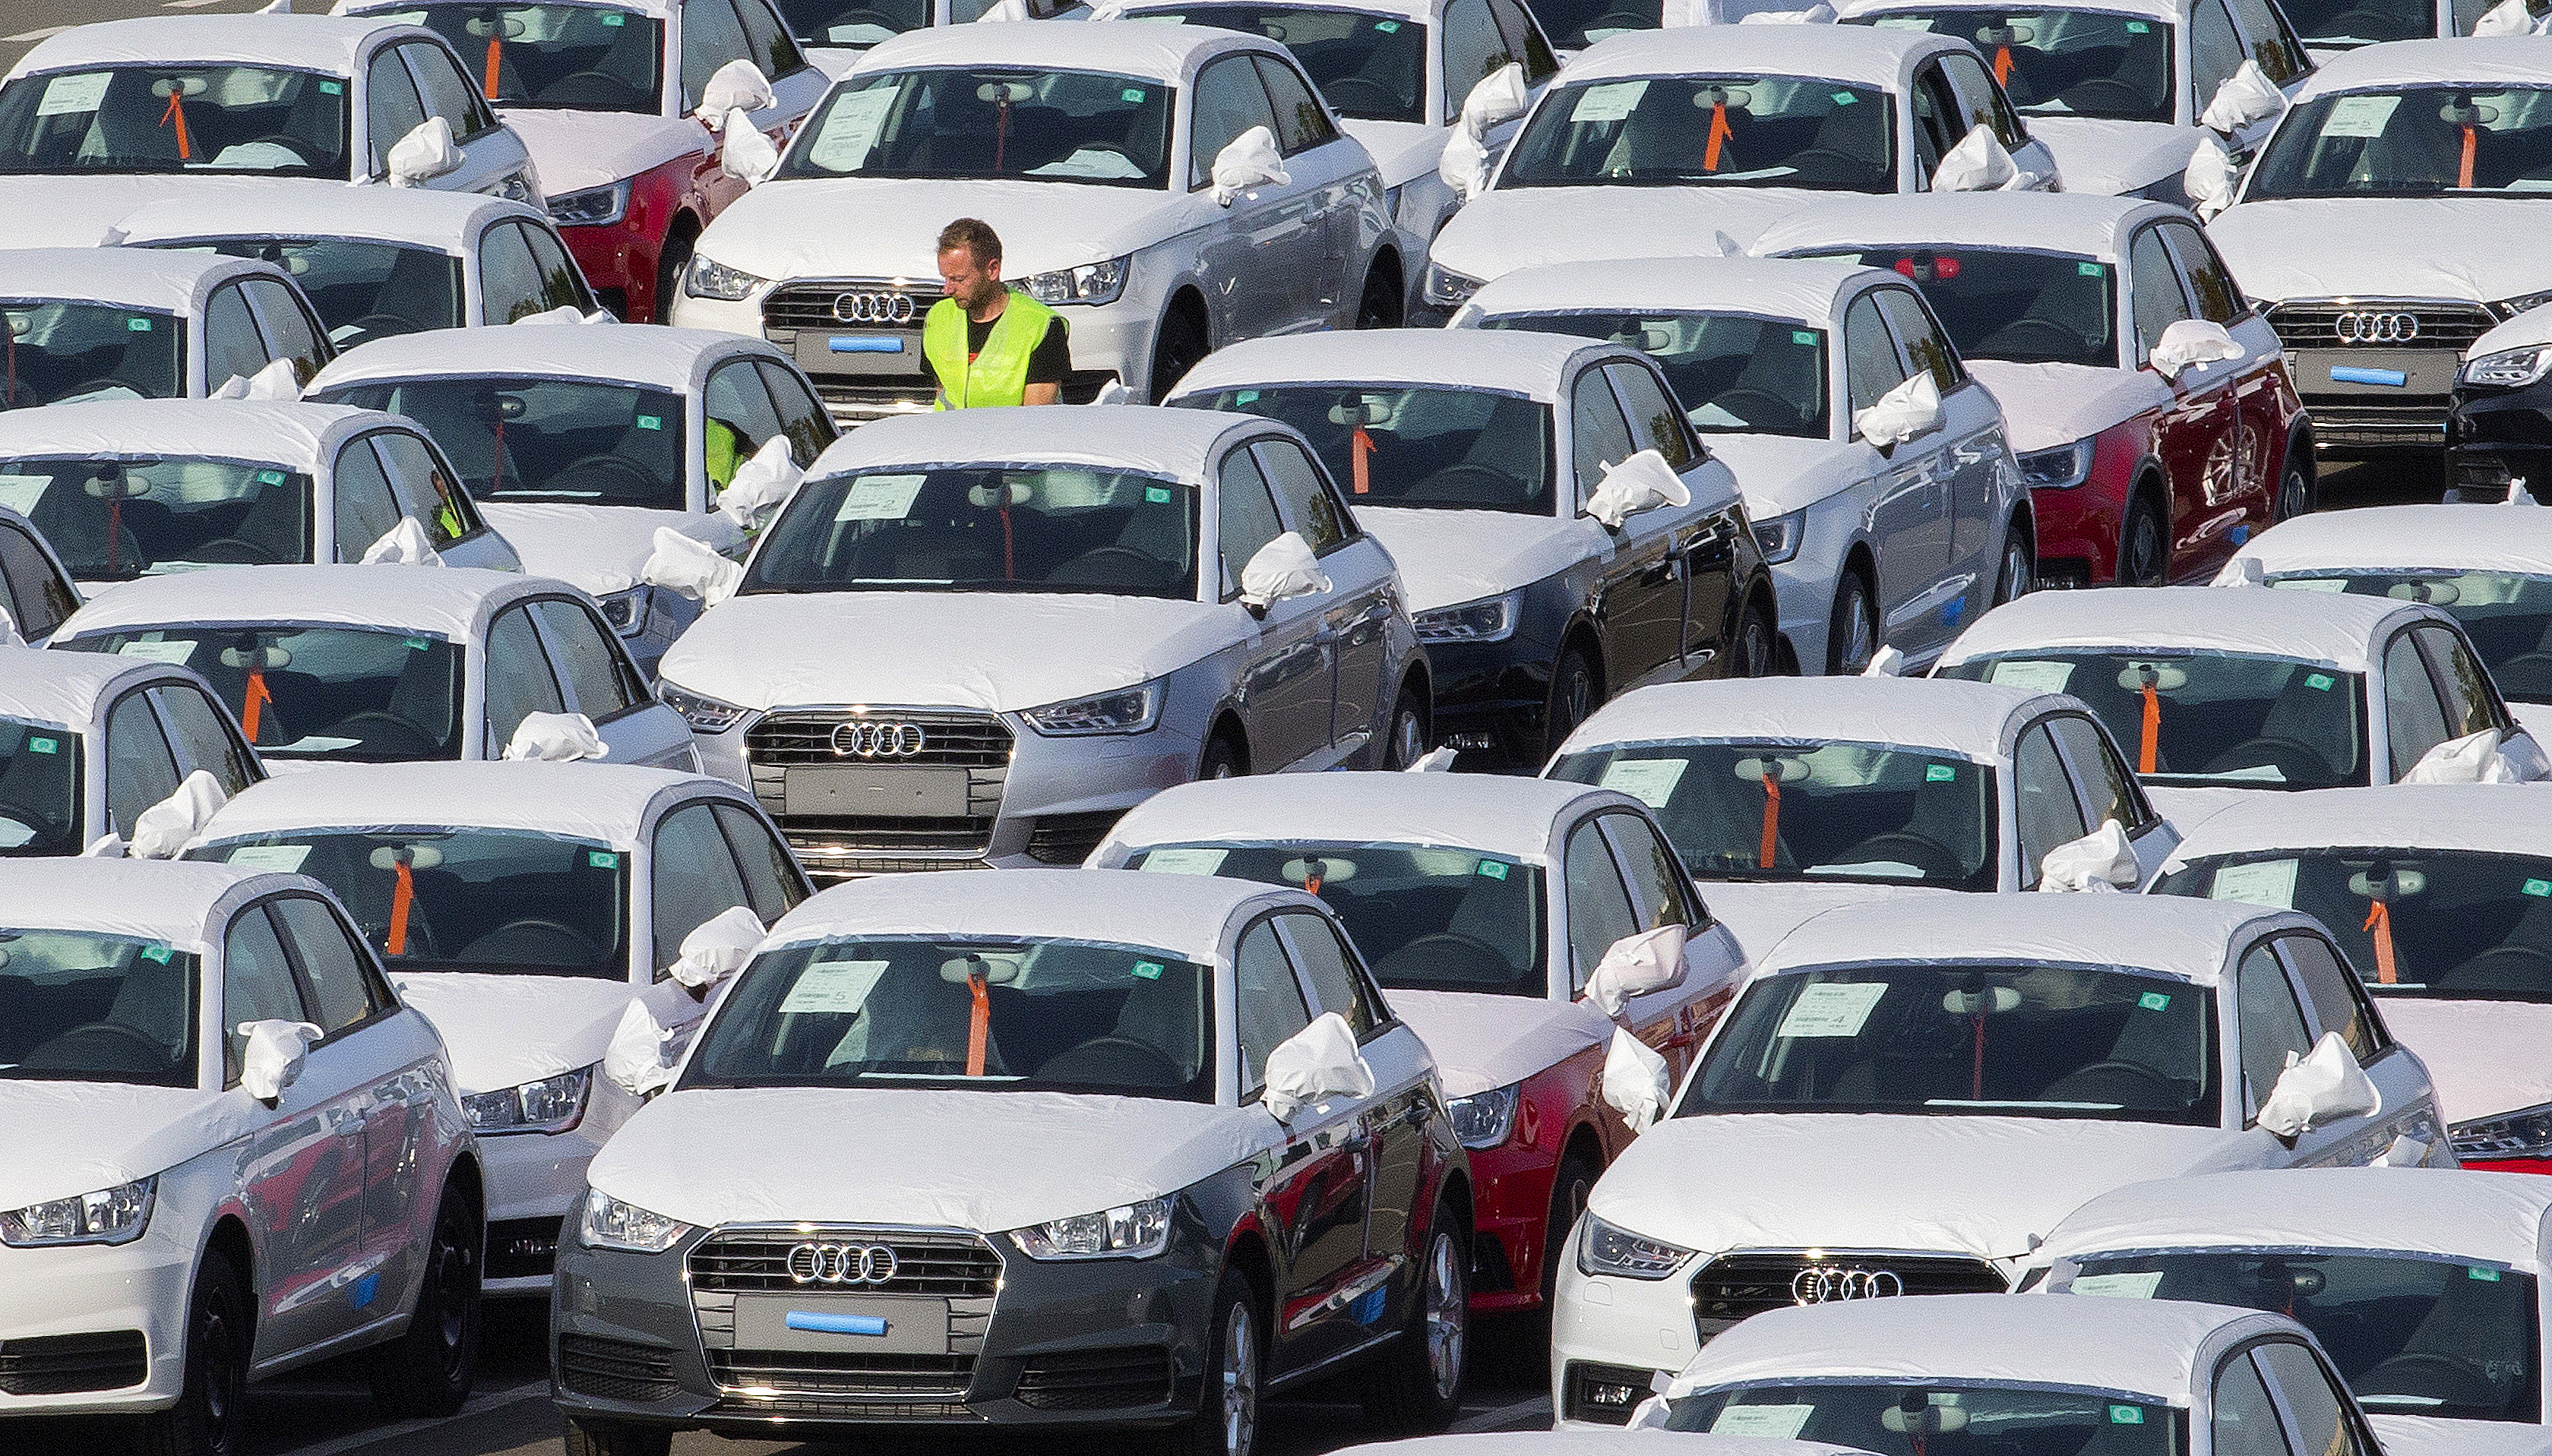 A worker walks among Audi A1 cars in the parking of the Audi powerplant in Brussels, Belgium September 28, 2015.